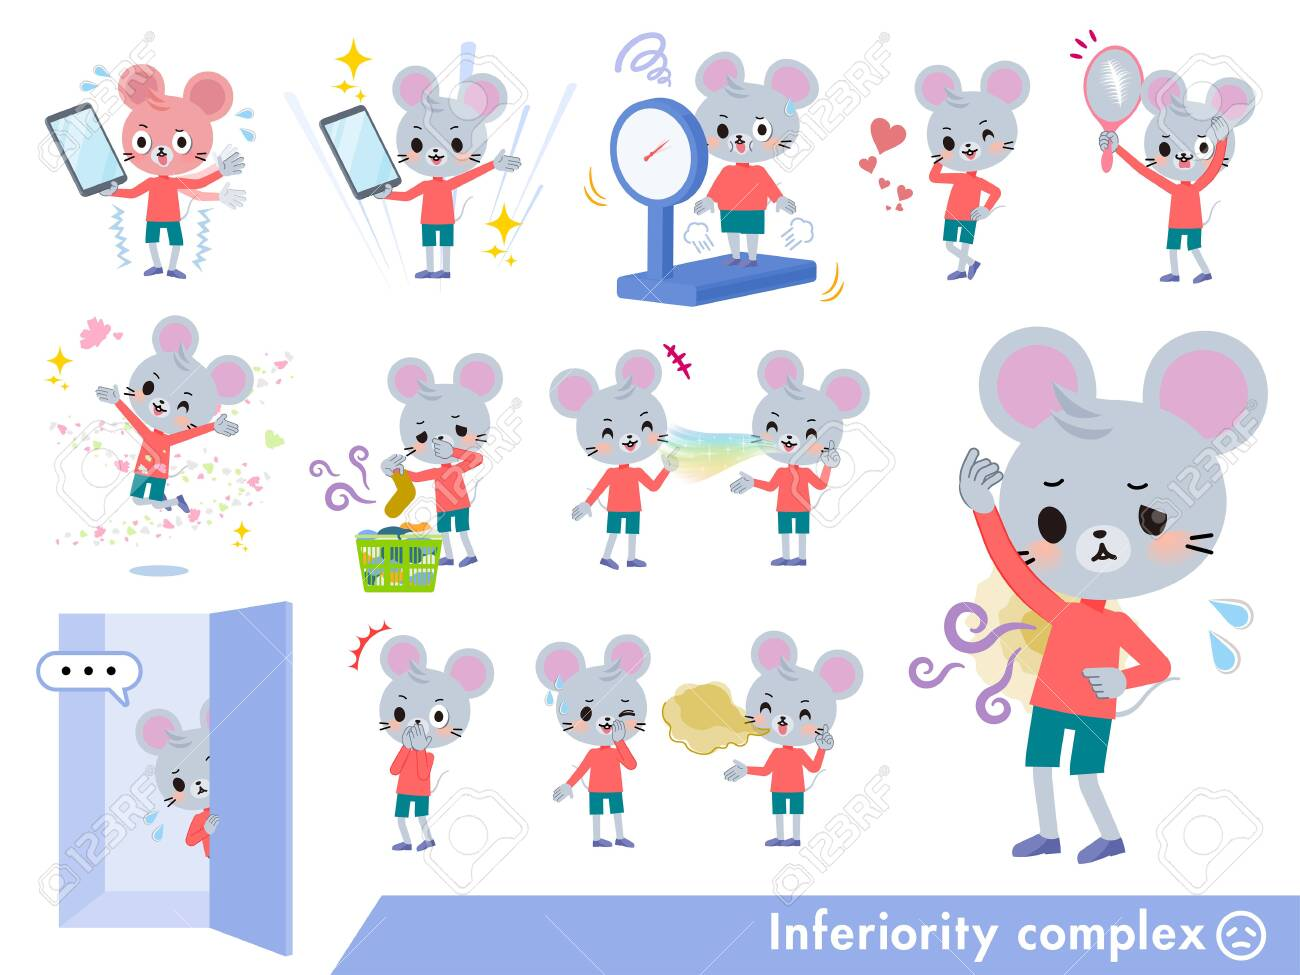 A set of mouse boy on inferiority complex.There are actions suffering from smell and appearance.It's vector art so it's easy to edit. - 126399331